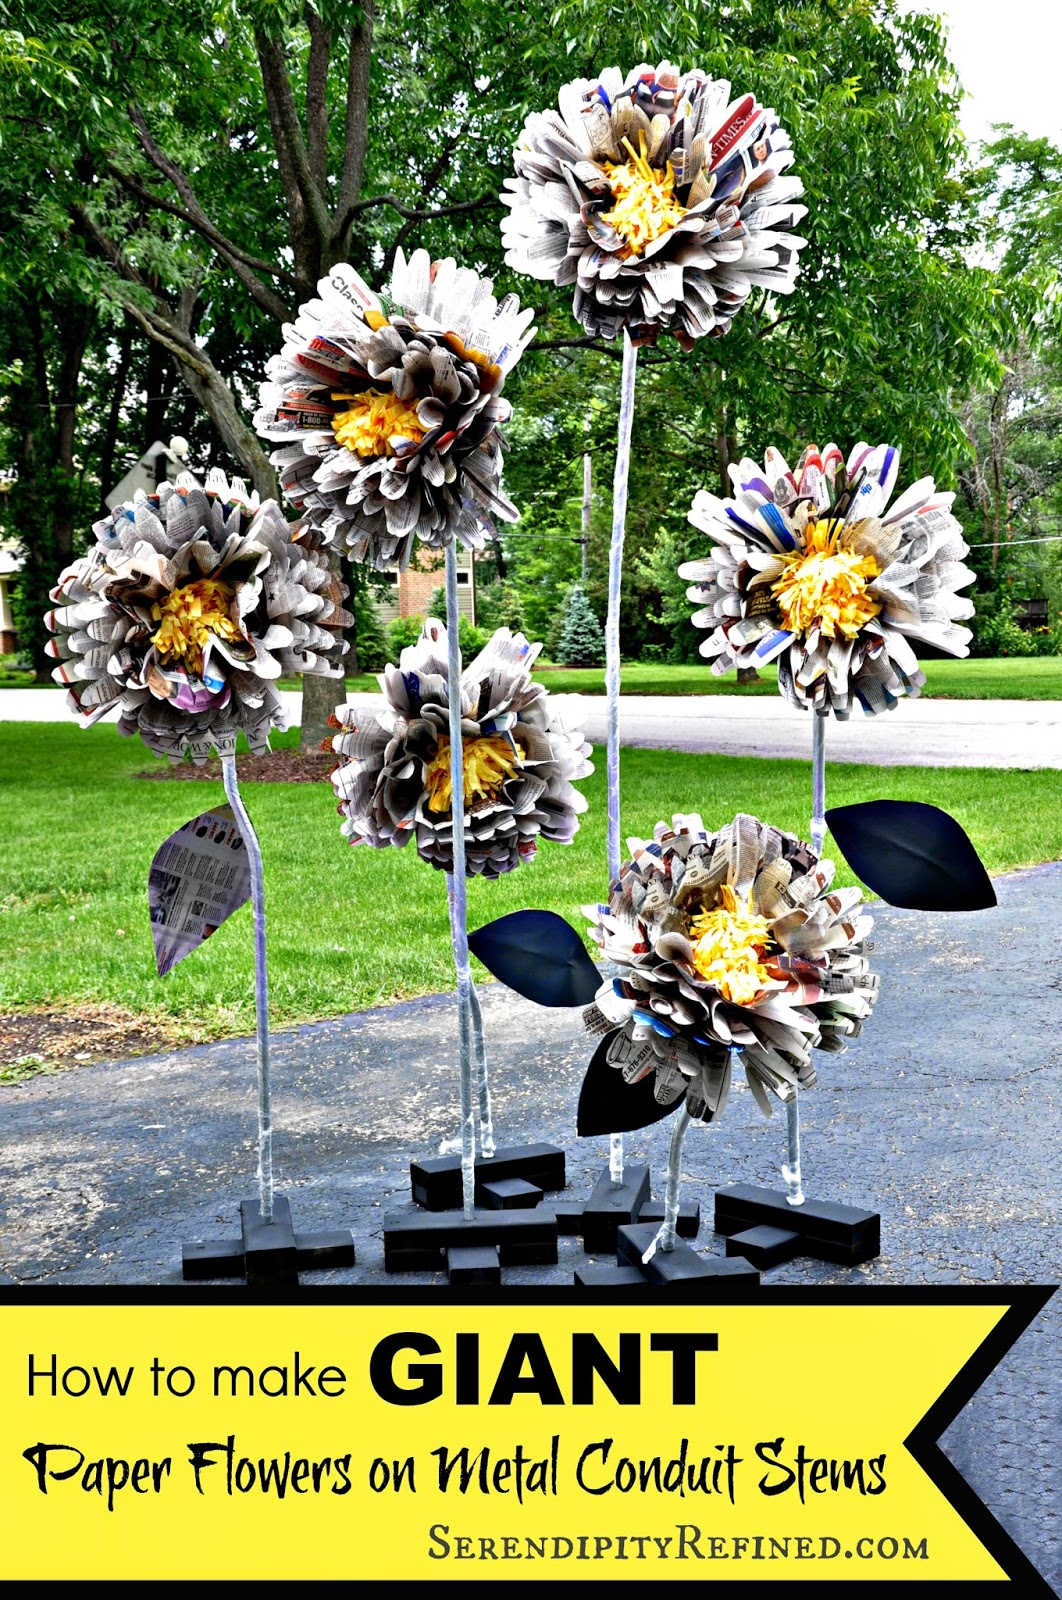 Serendipity Refined Blog Diy Giant Free Standing Paper Flowers On